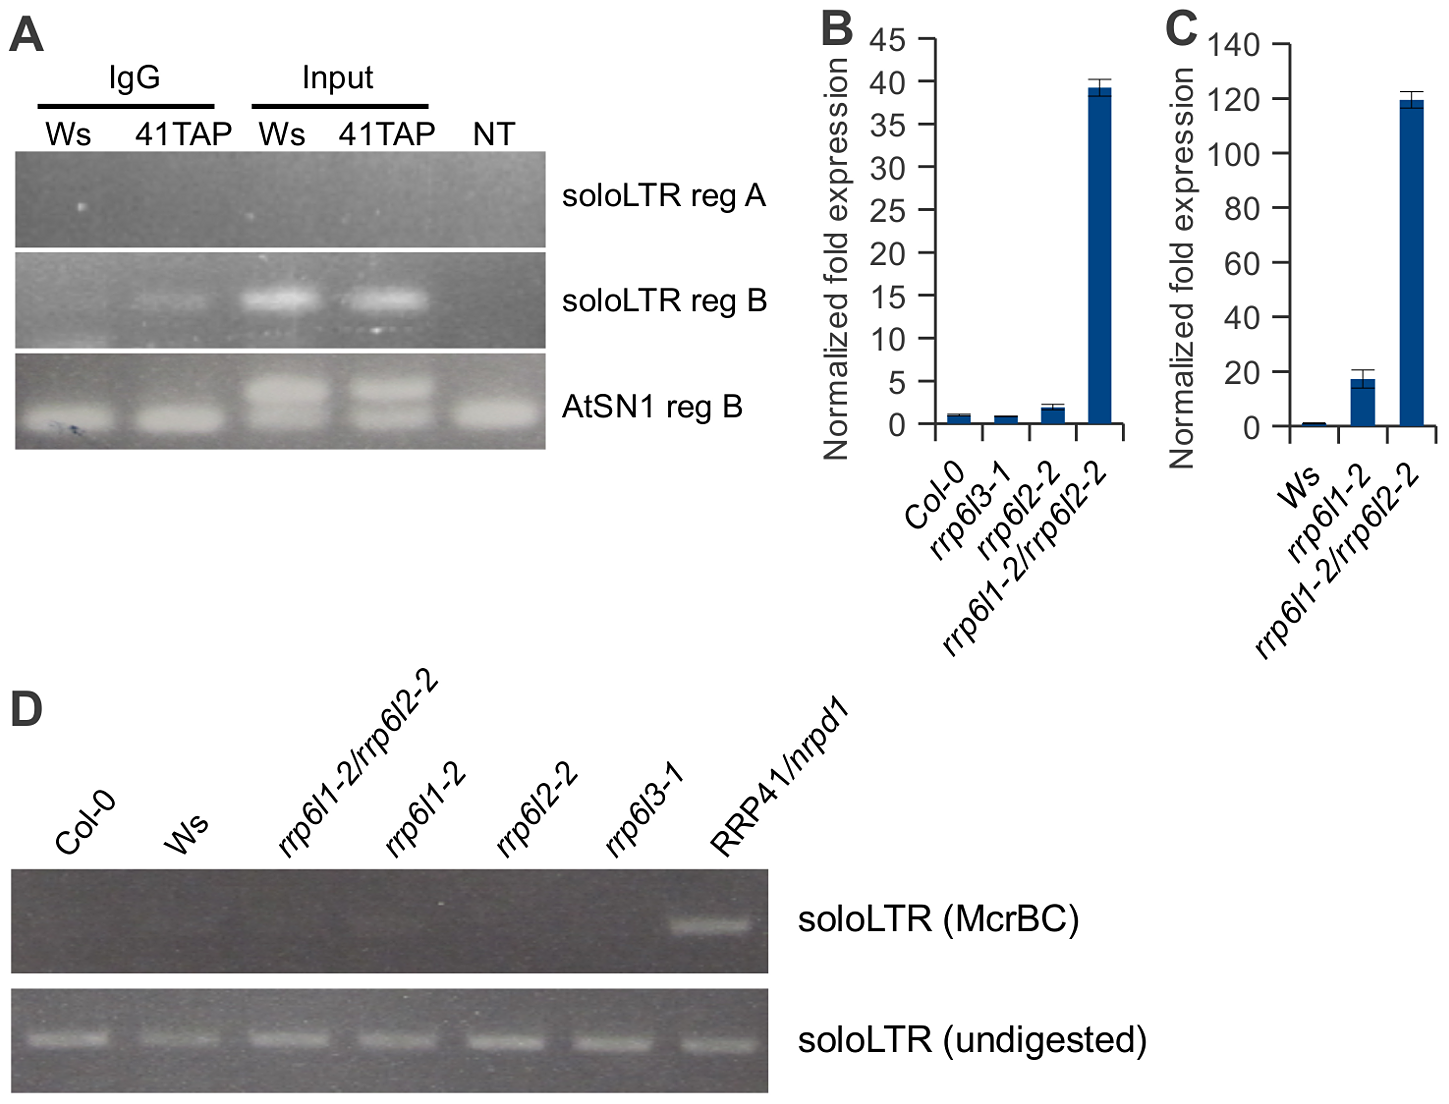 Exosome associates with transcripts produced from the region adjacent to the solo LTR scaffold-generating area.